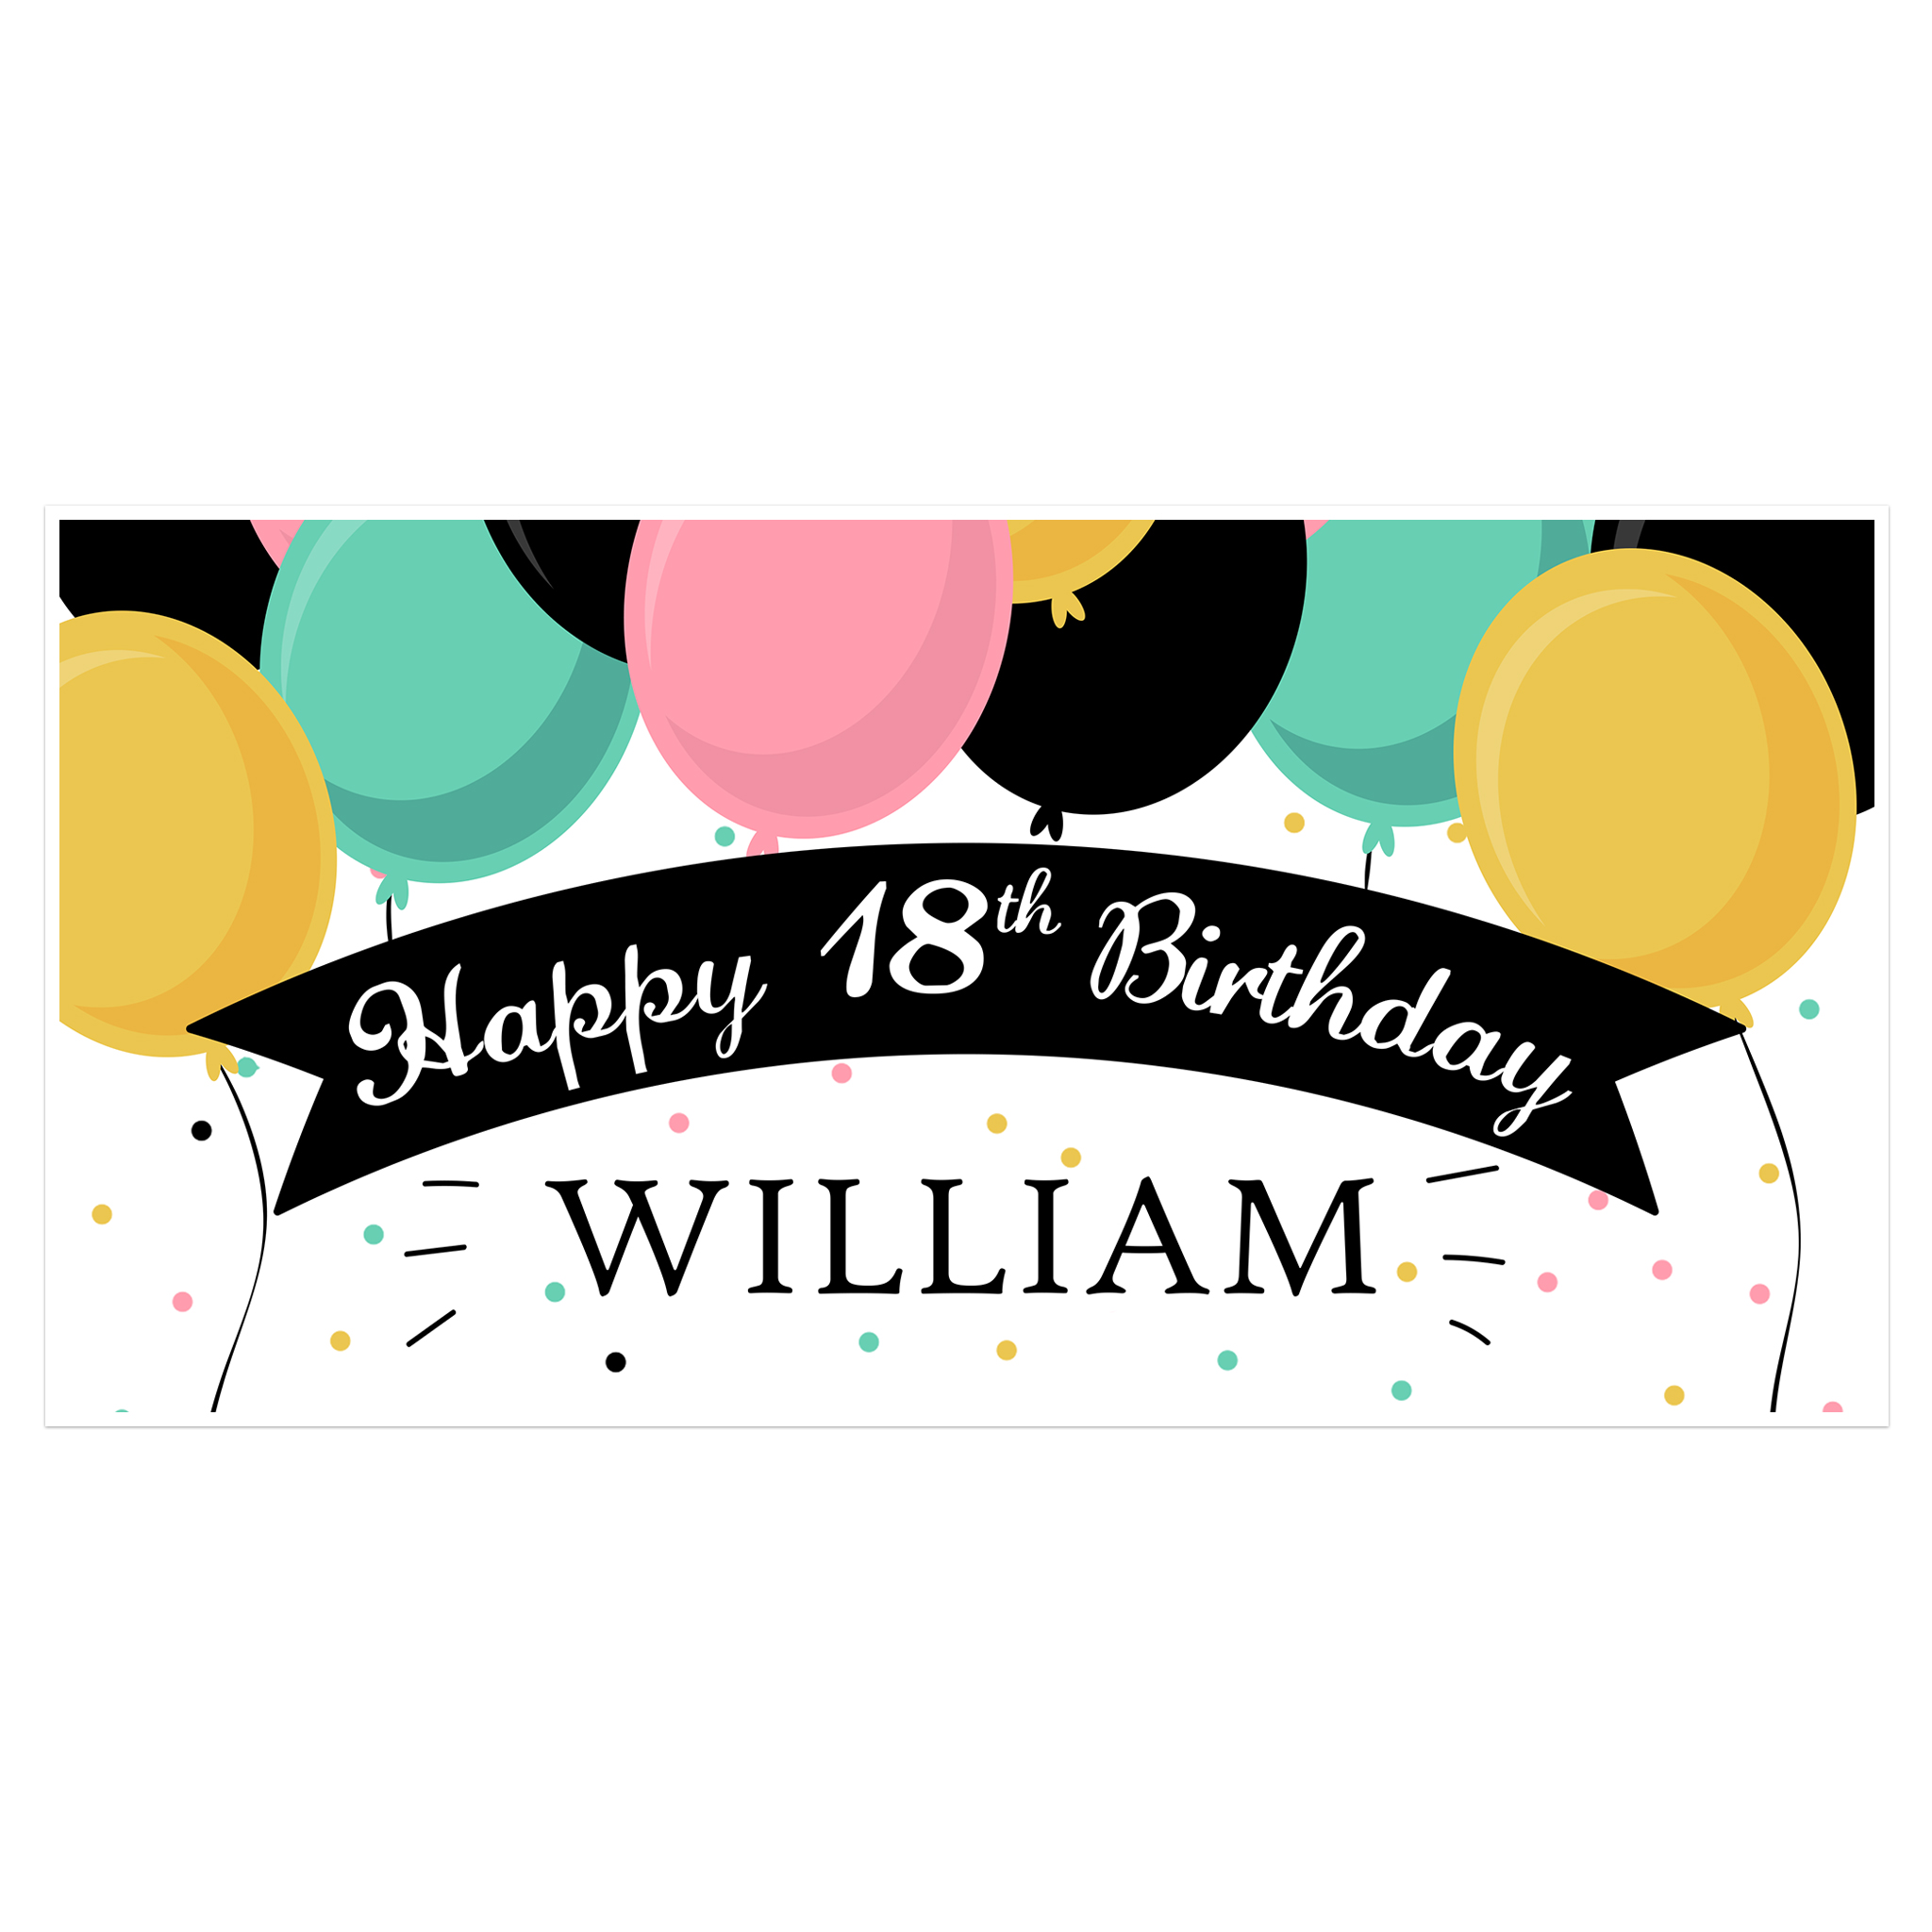 18th birthday banners personalized with photo ; 18th-birthday-banner-05